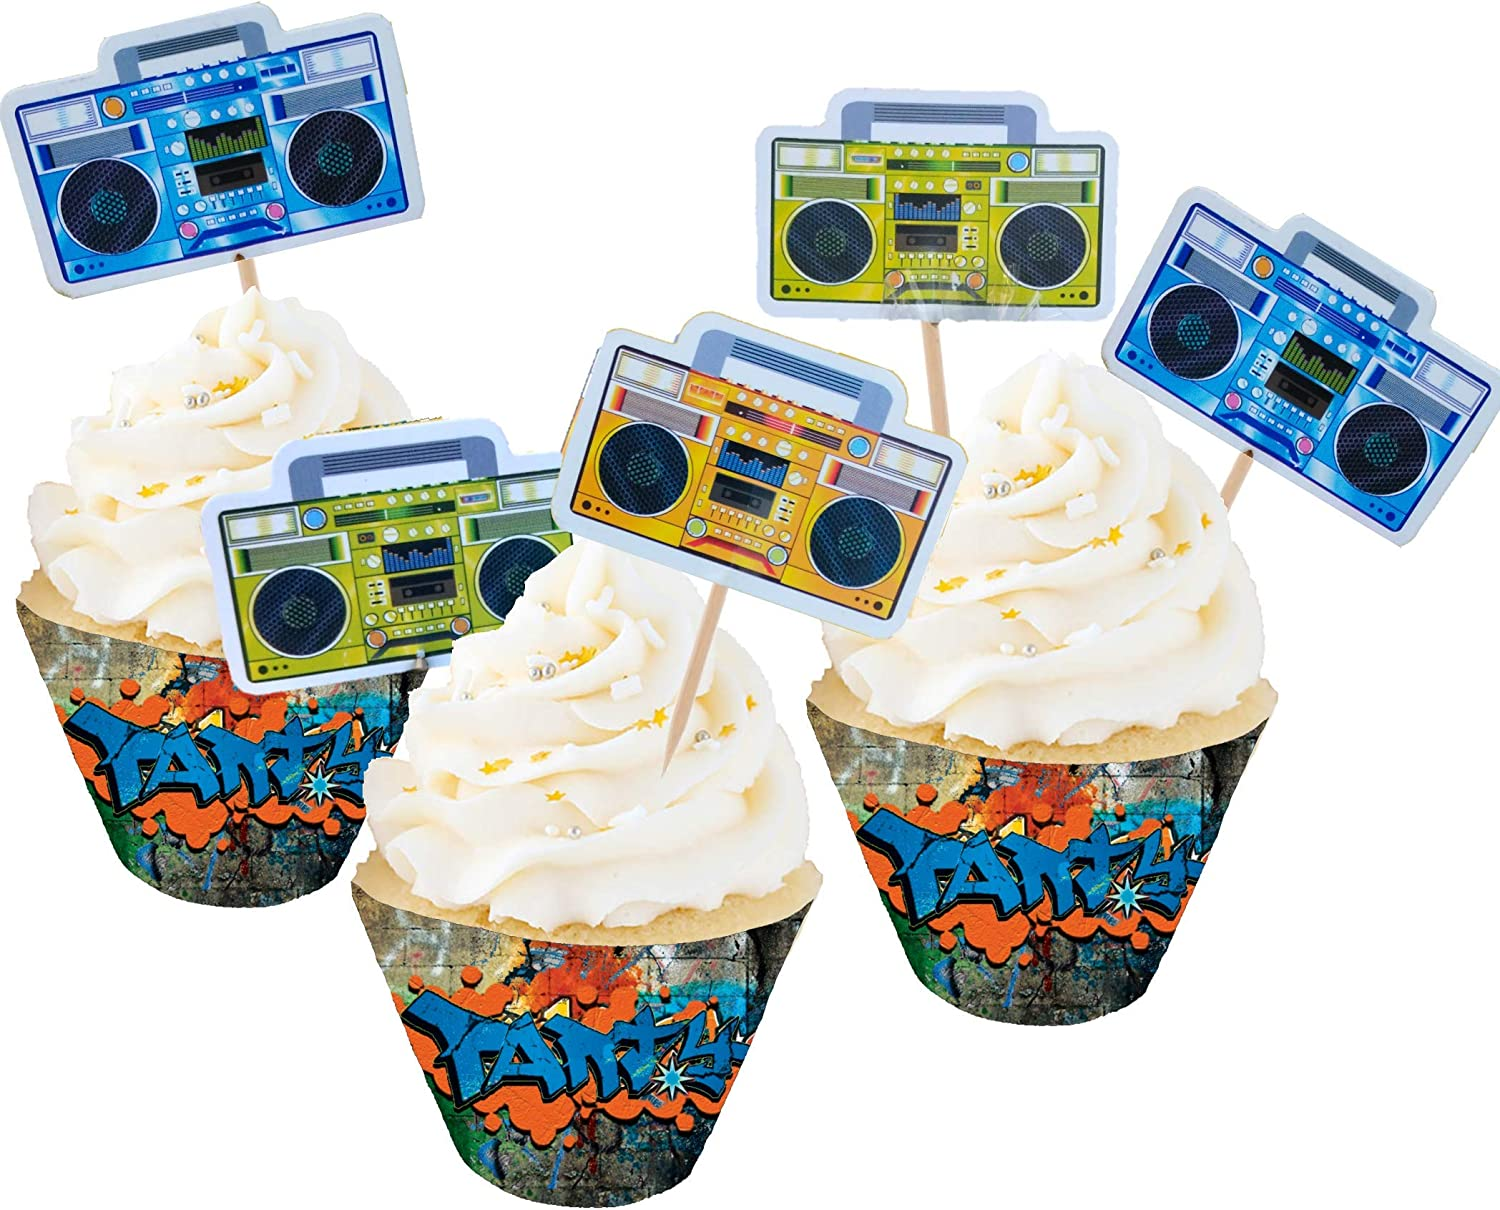 Party Drop Box BoomBox Graffiti Wall Cupcake Decorations Party Favors Toppers Wrappers